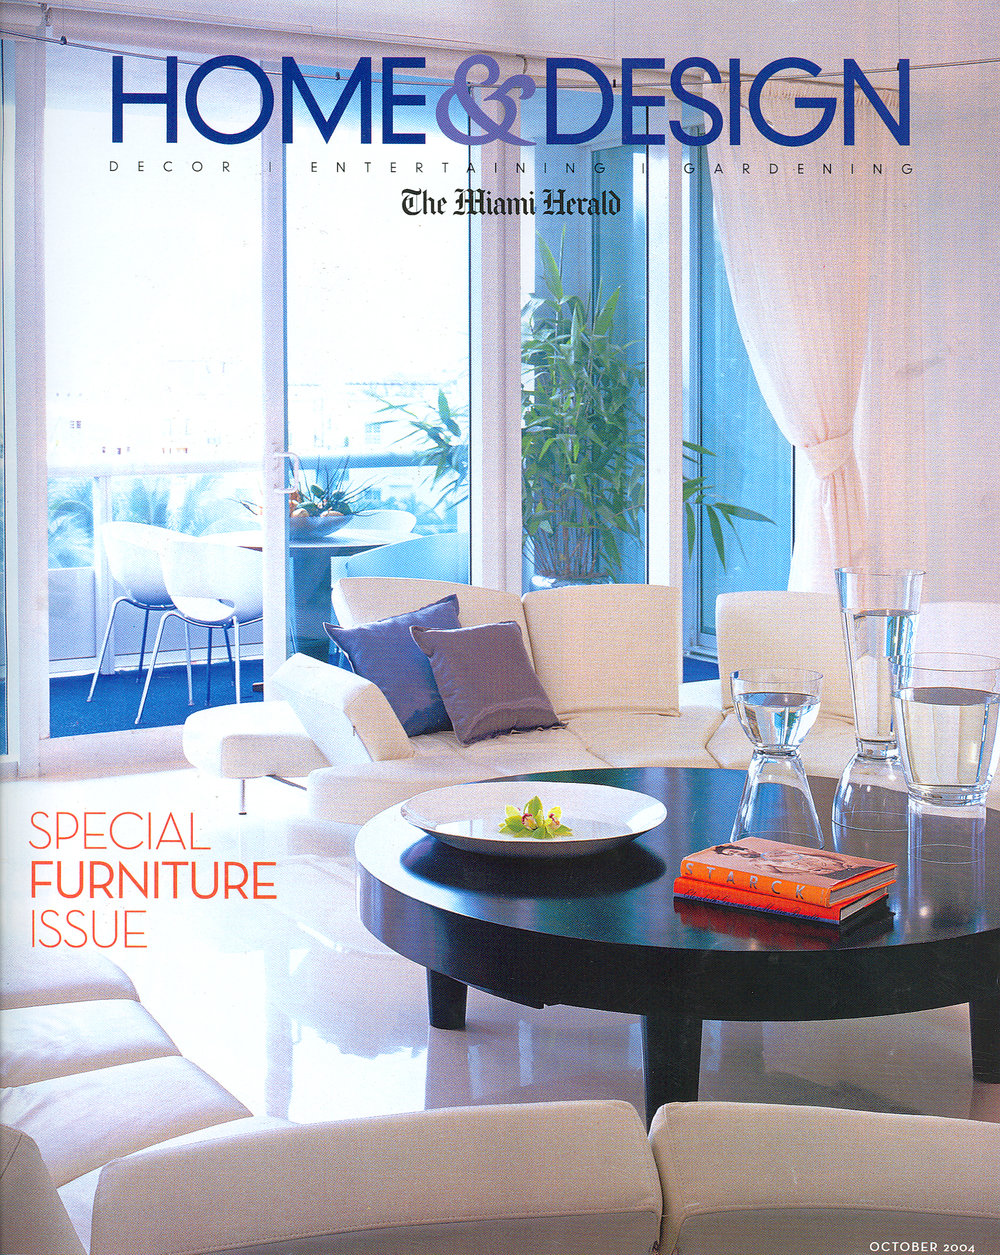 Home&Design section October2004cover.jpg